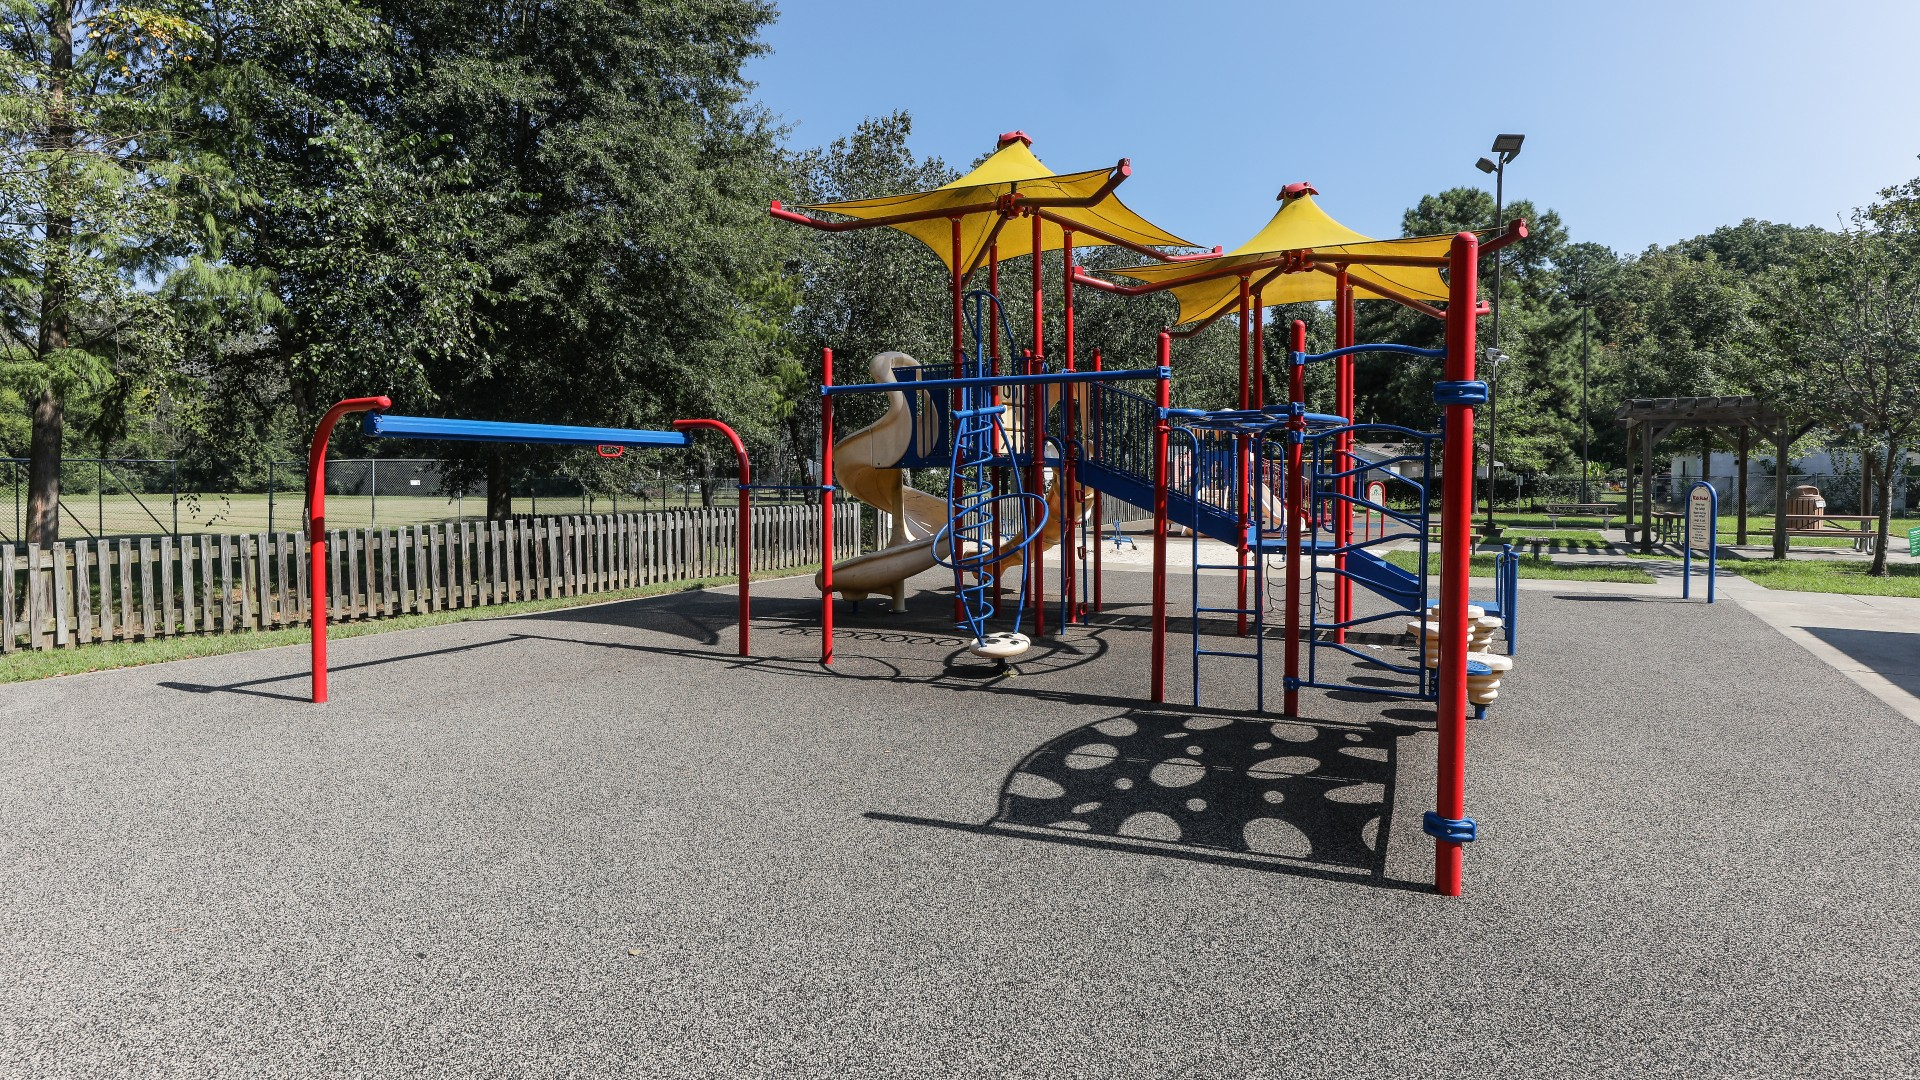 A larger, more advanced playground for older kids